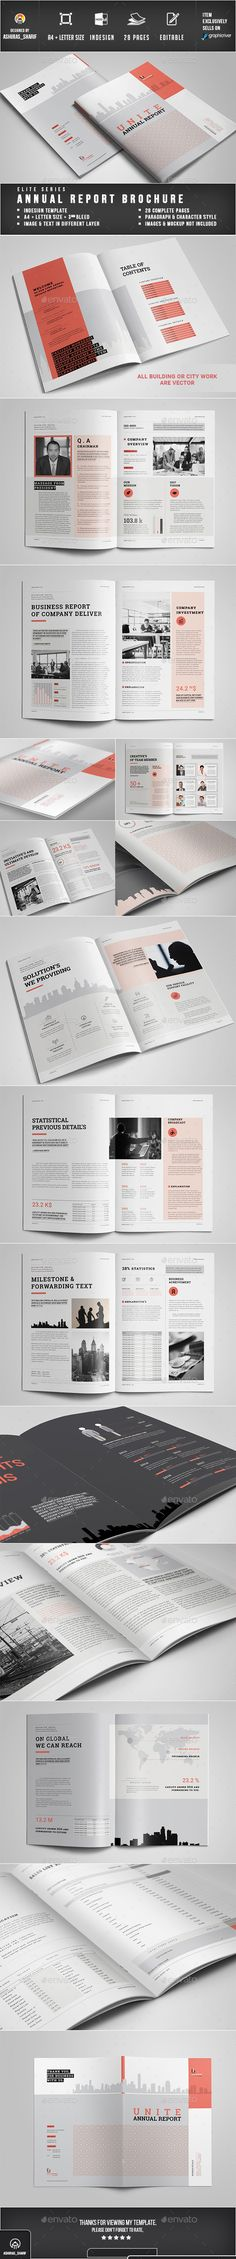 Annual Report Template InDesign INDD. Download here: https://graphicriver.net/item/annual-report/17126366?ref=ksioks